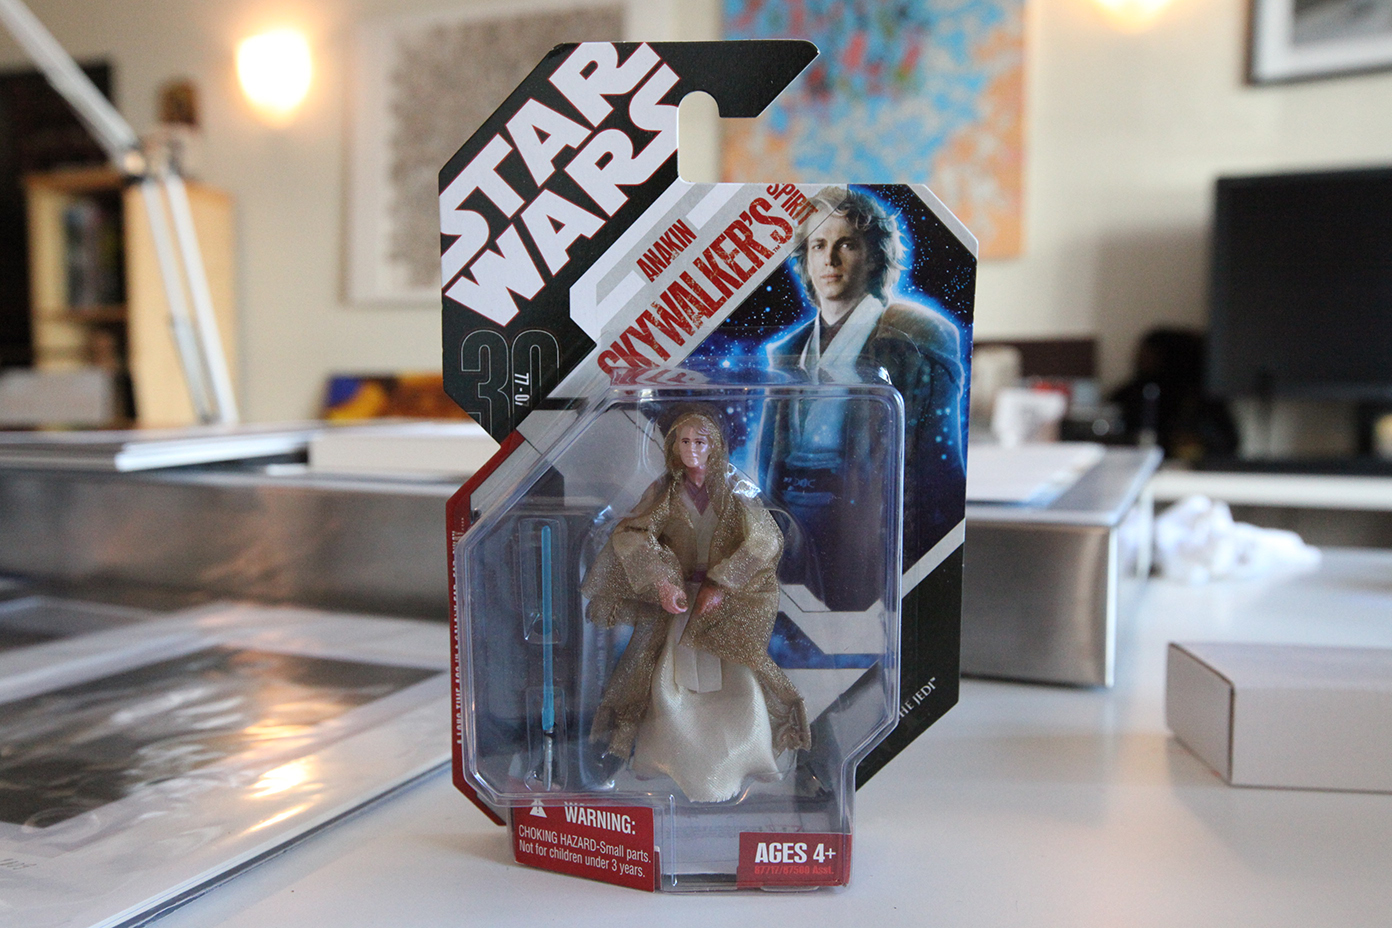 Gifts from George - Star Wars Anakin Skywalker toy